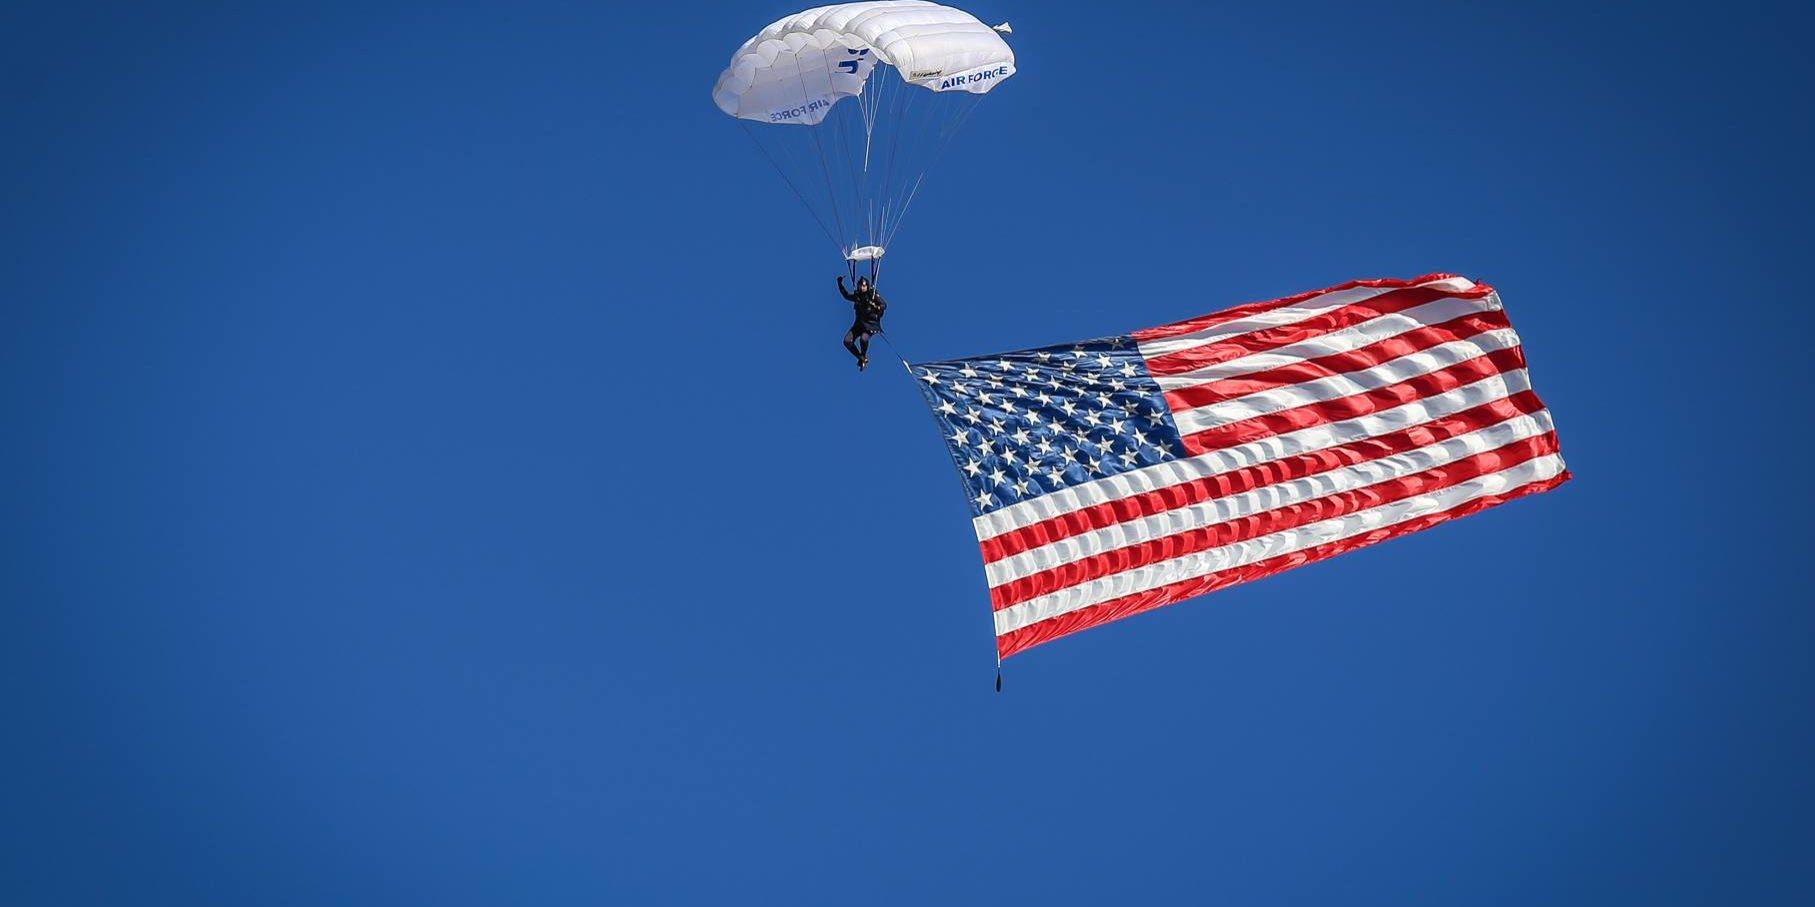 Parachute_flag_by_Mark_Curtis